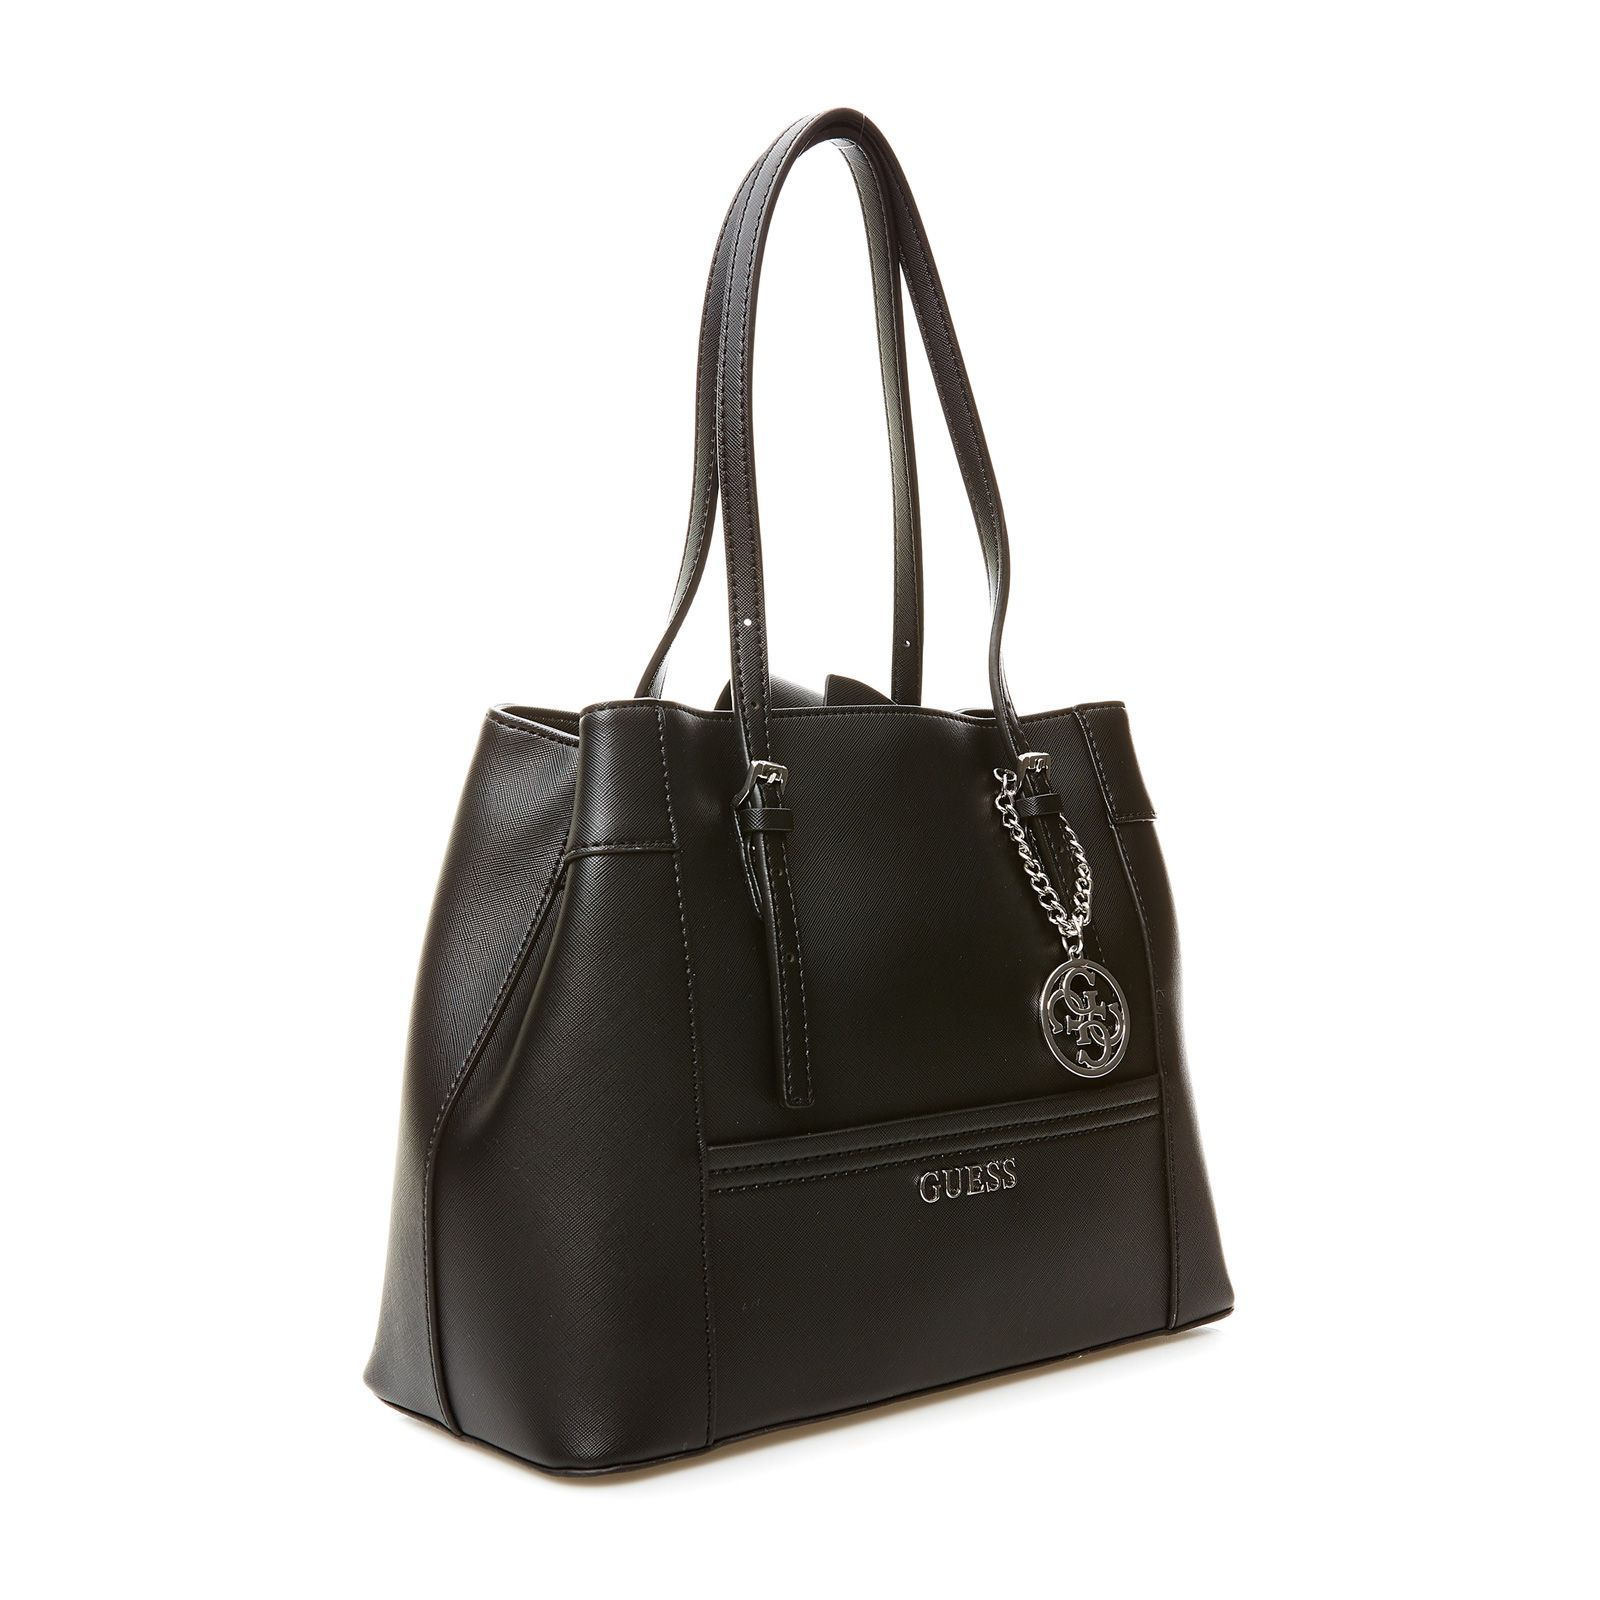 Guess Sac Delaney Guess Cabas Delaney Noir Tqd4nBxwEx